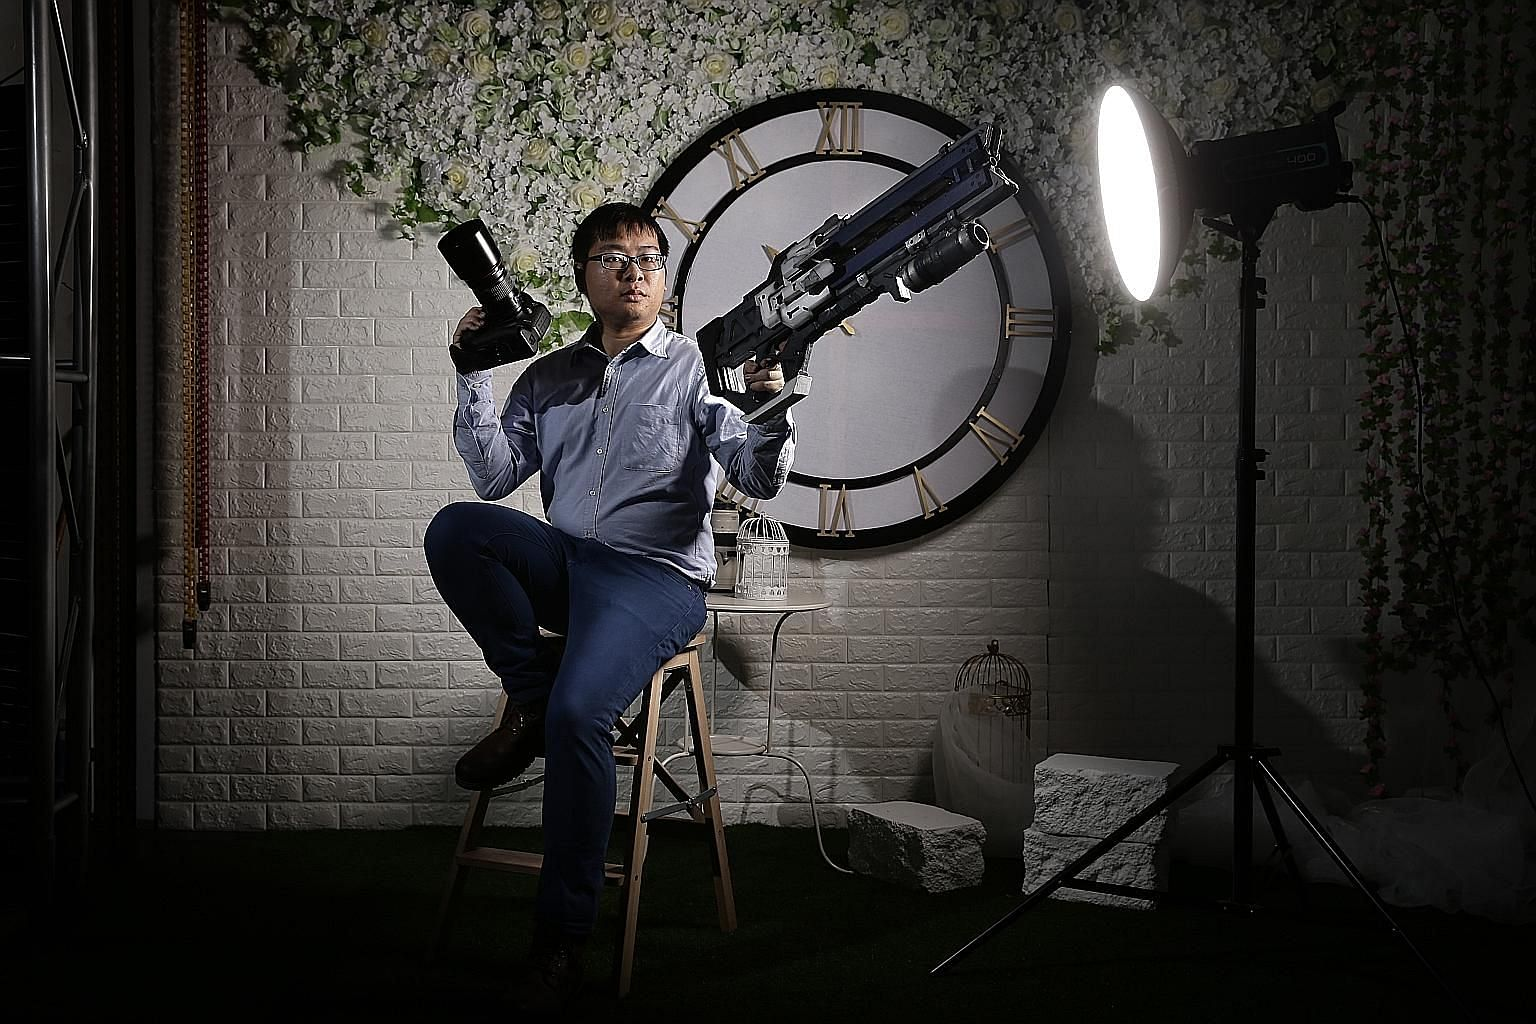 Photography studio Luminos owner Kwong Wai Keat provides studio backdrops based on popular anime series.